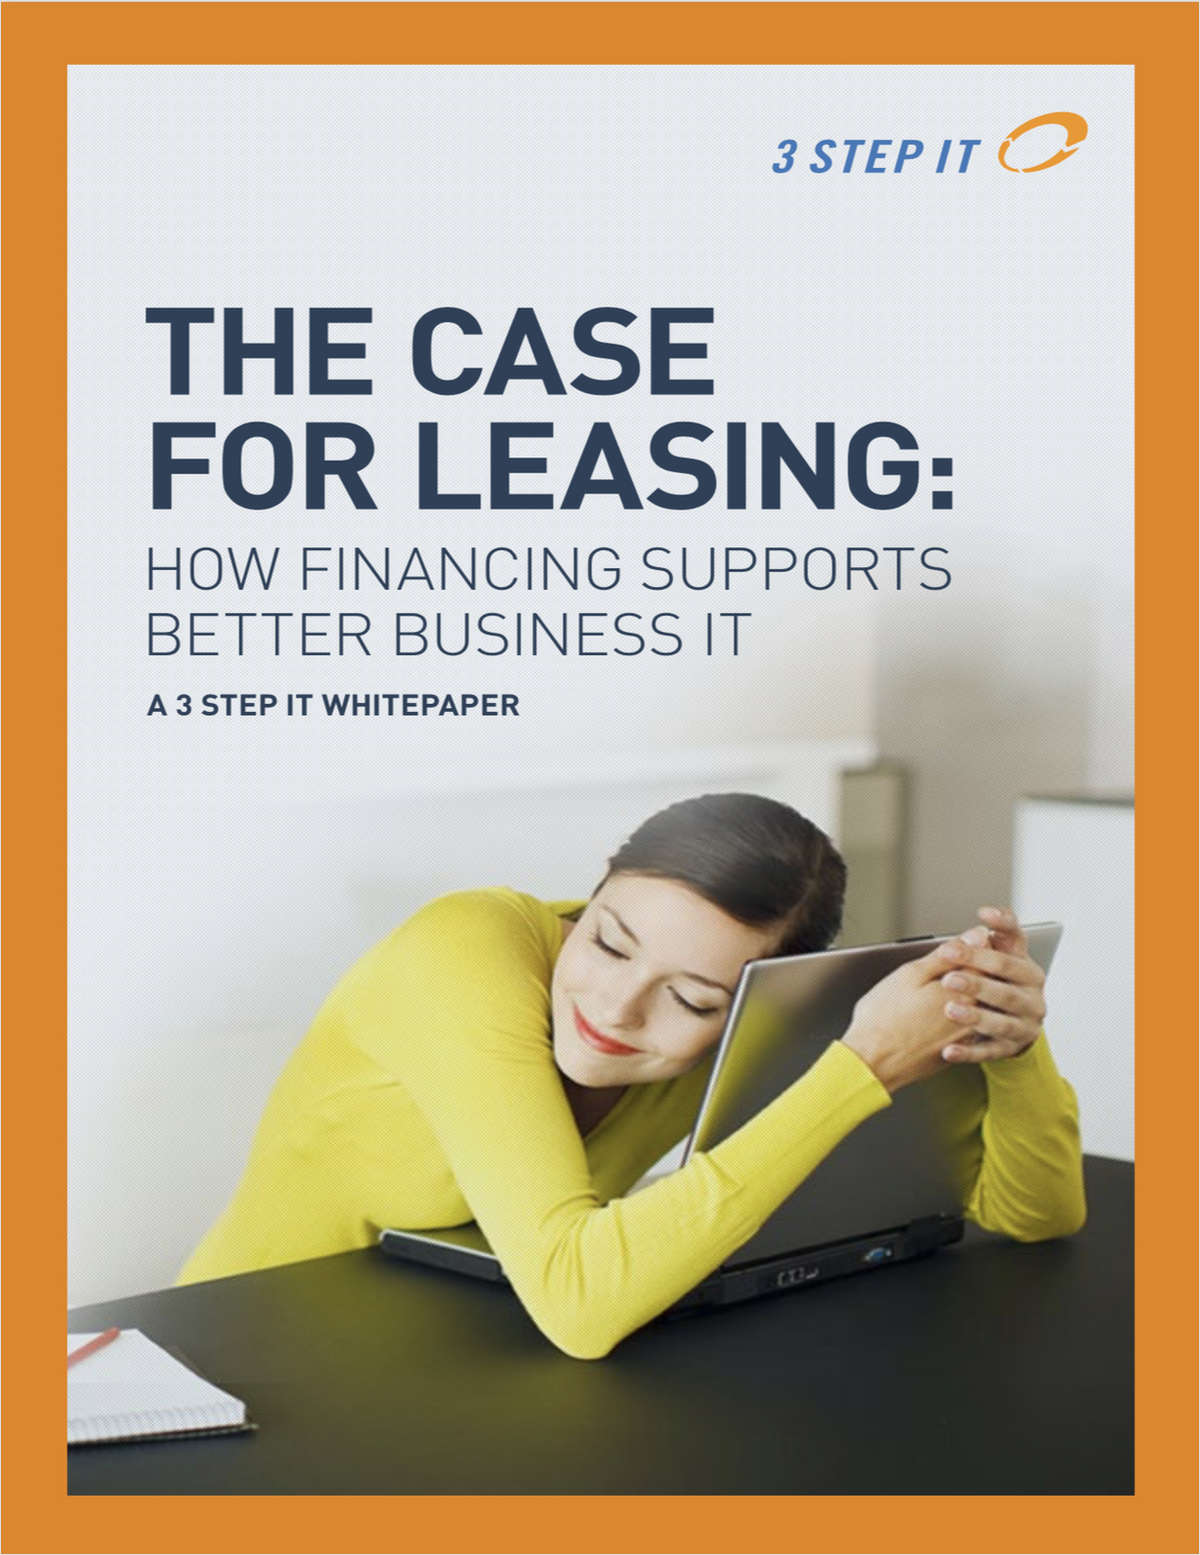 Welcome to the road to refresh. Why leasing is a better option to purchasing when dealing with IT?